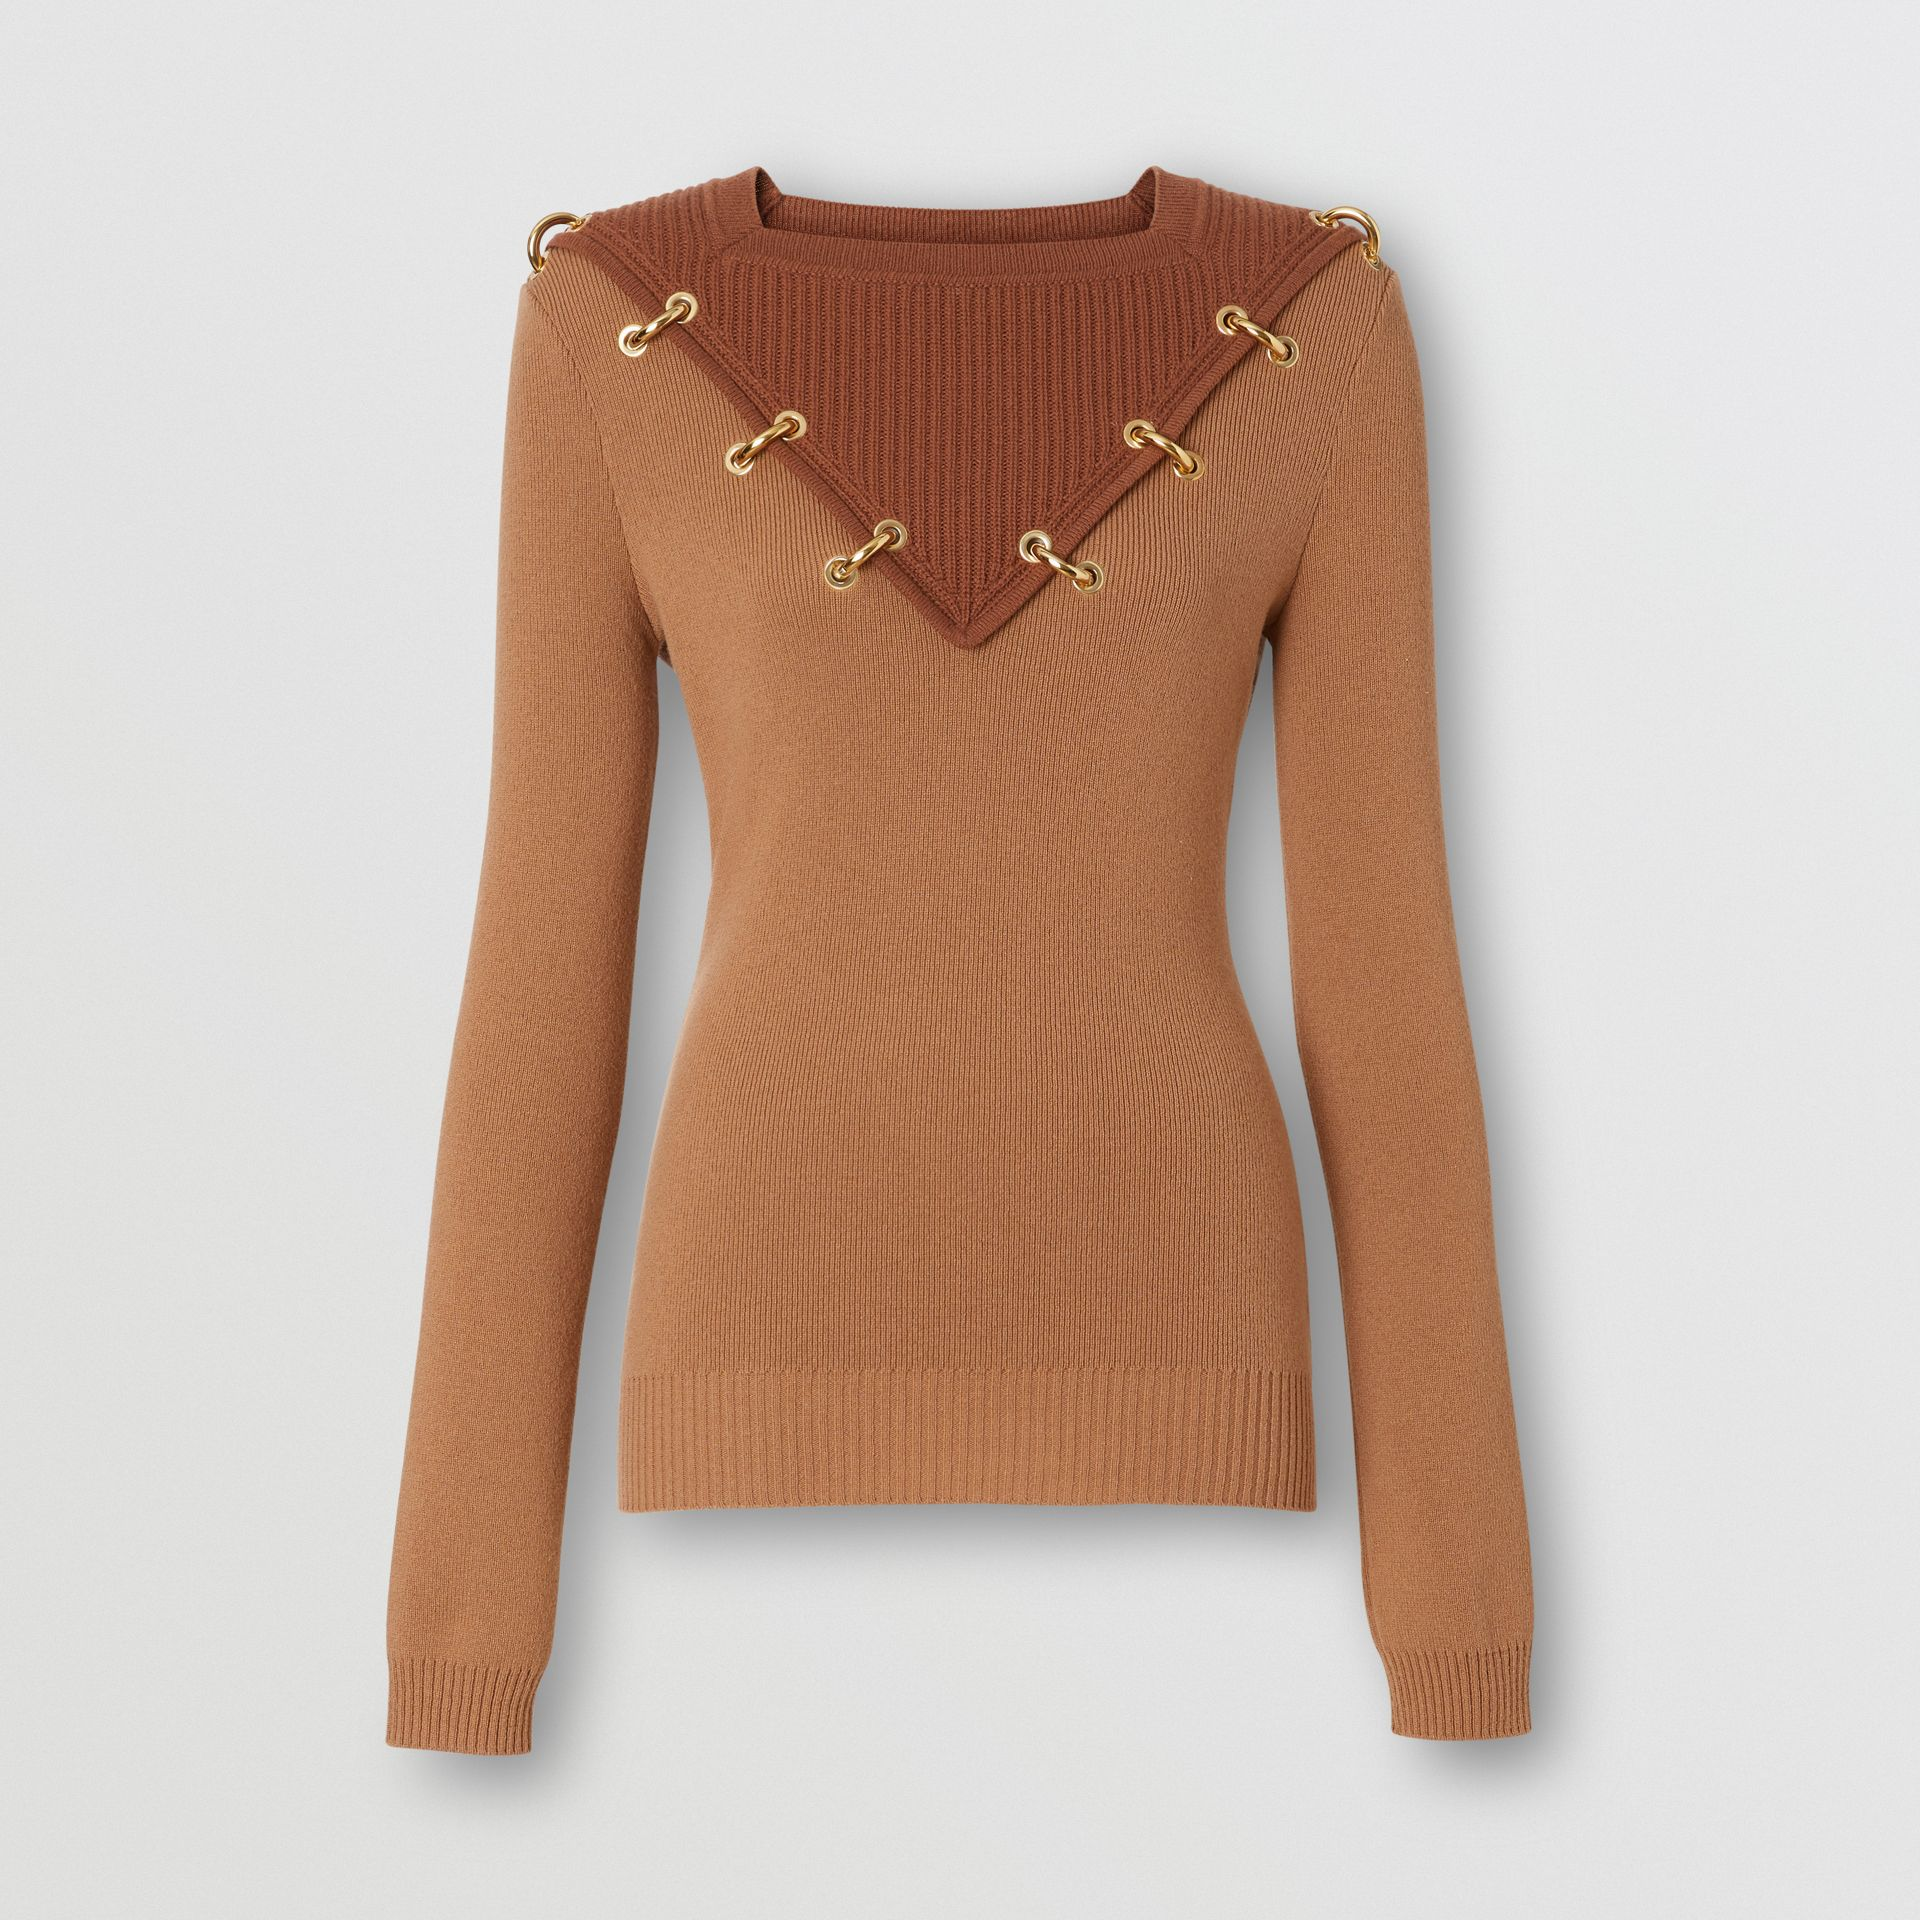 Ring-pierced Two-tone Wool Cashmere Sweater in Warm Camel - Women   Burberry - gallery image 3